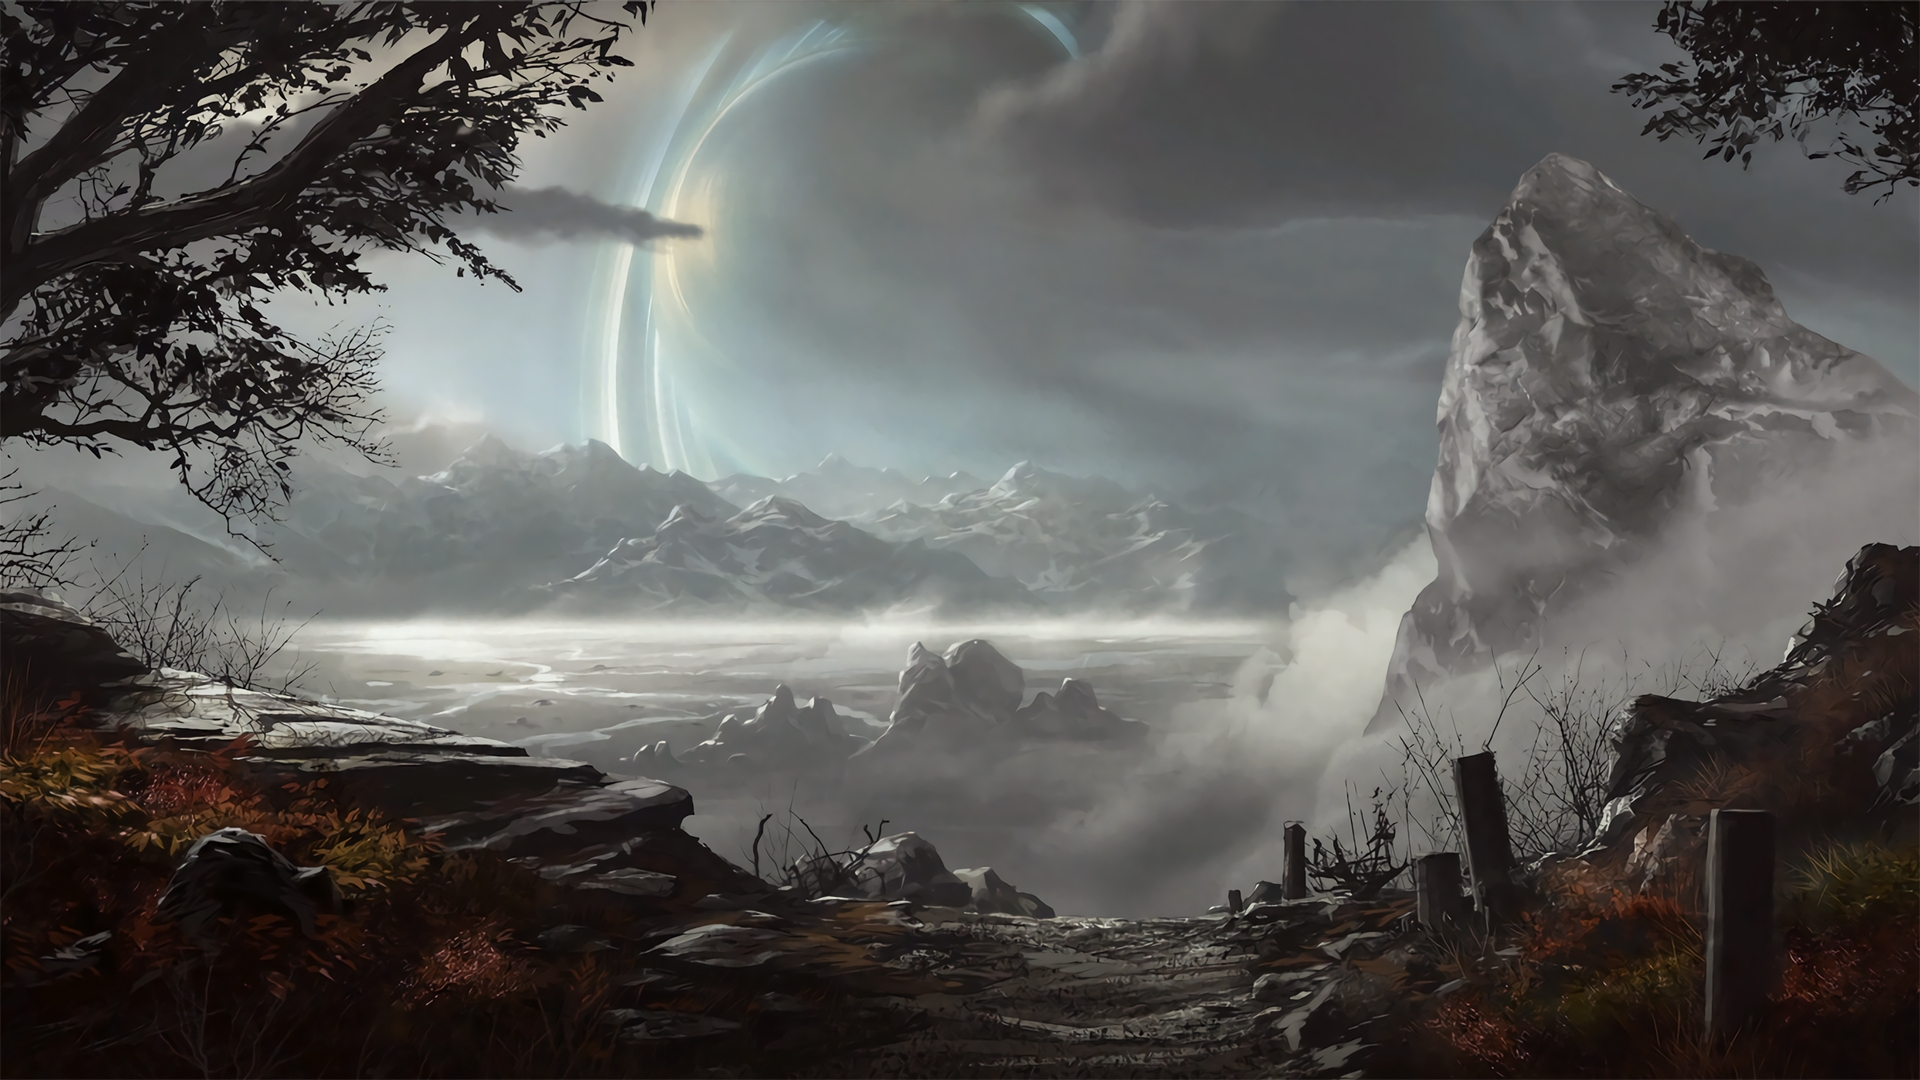 halo: reach backgrounds in 4k : halo